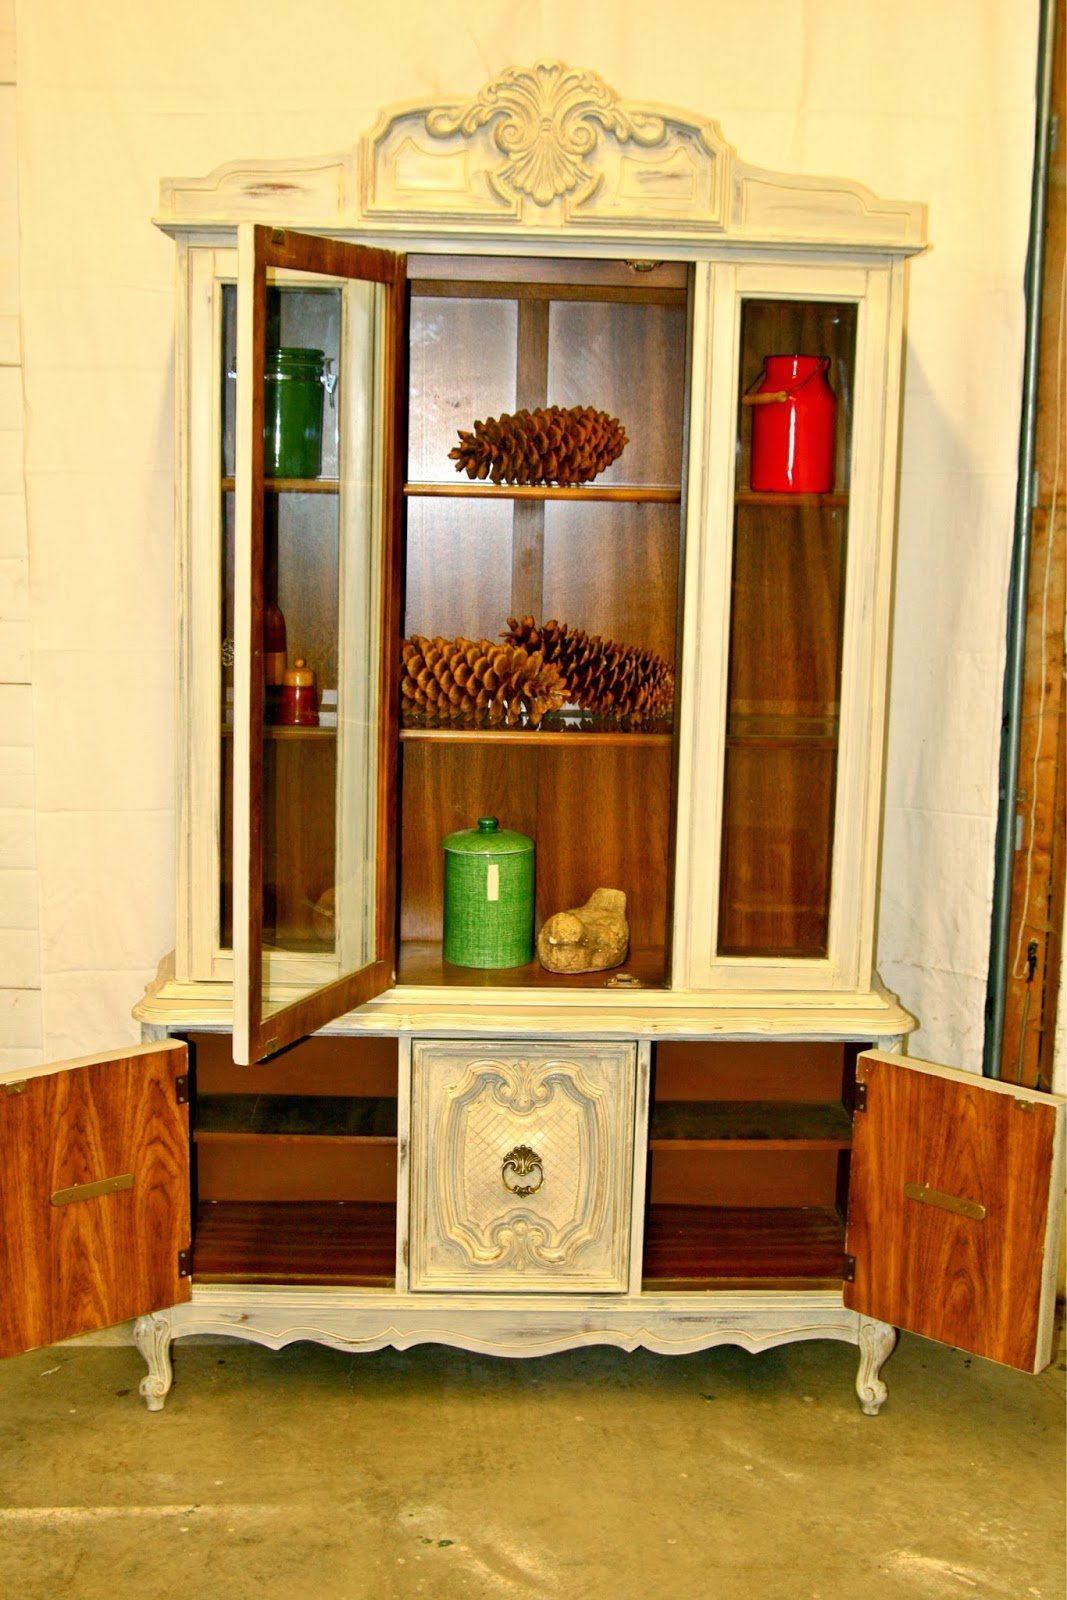 Http://hamilton.kijiji.ca/c Buy And Sell Furniture Hutches Display Cabinets  Vintage China Cabinet W0QQAdIdZ548906686